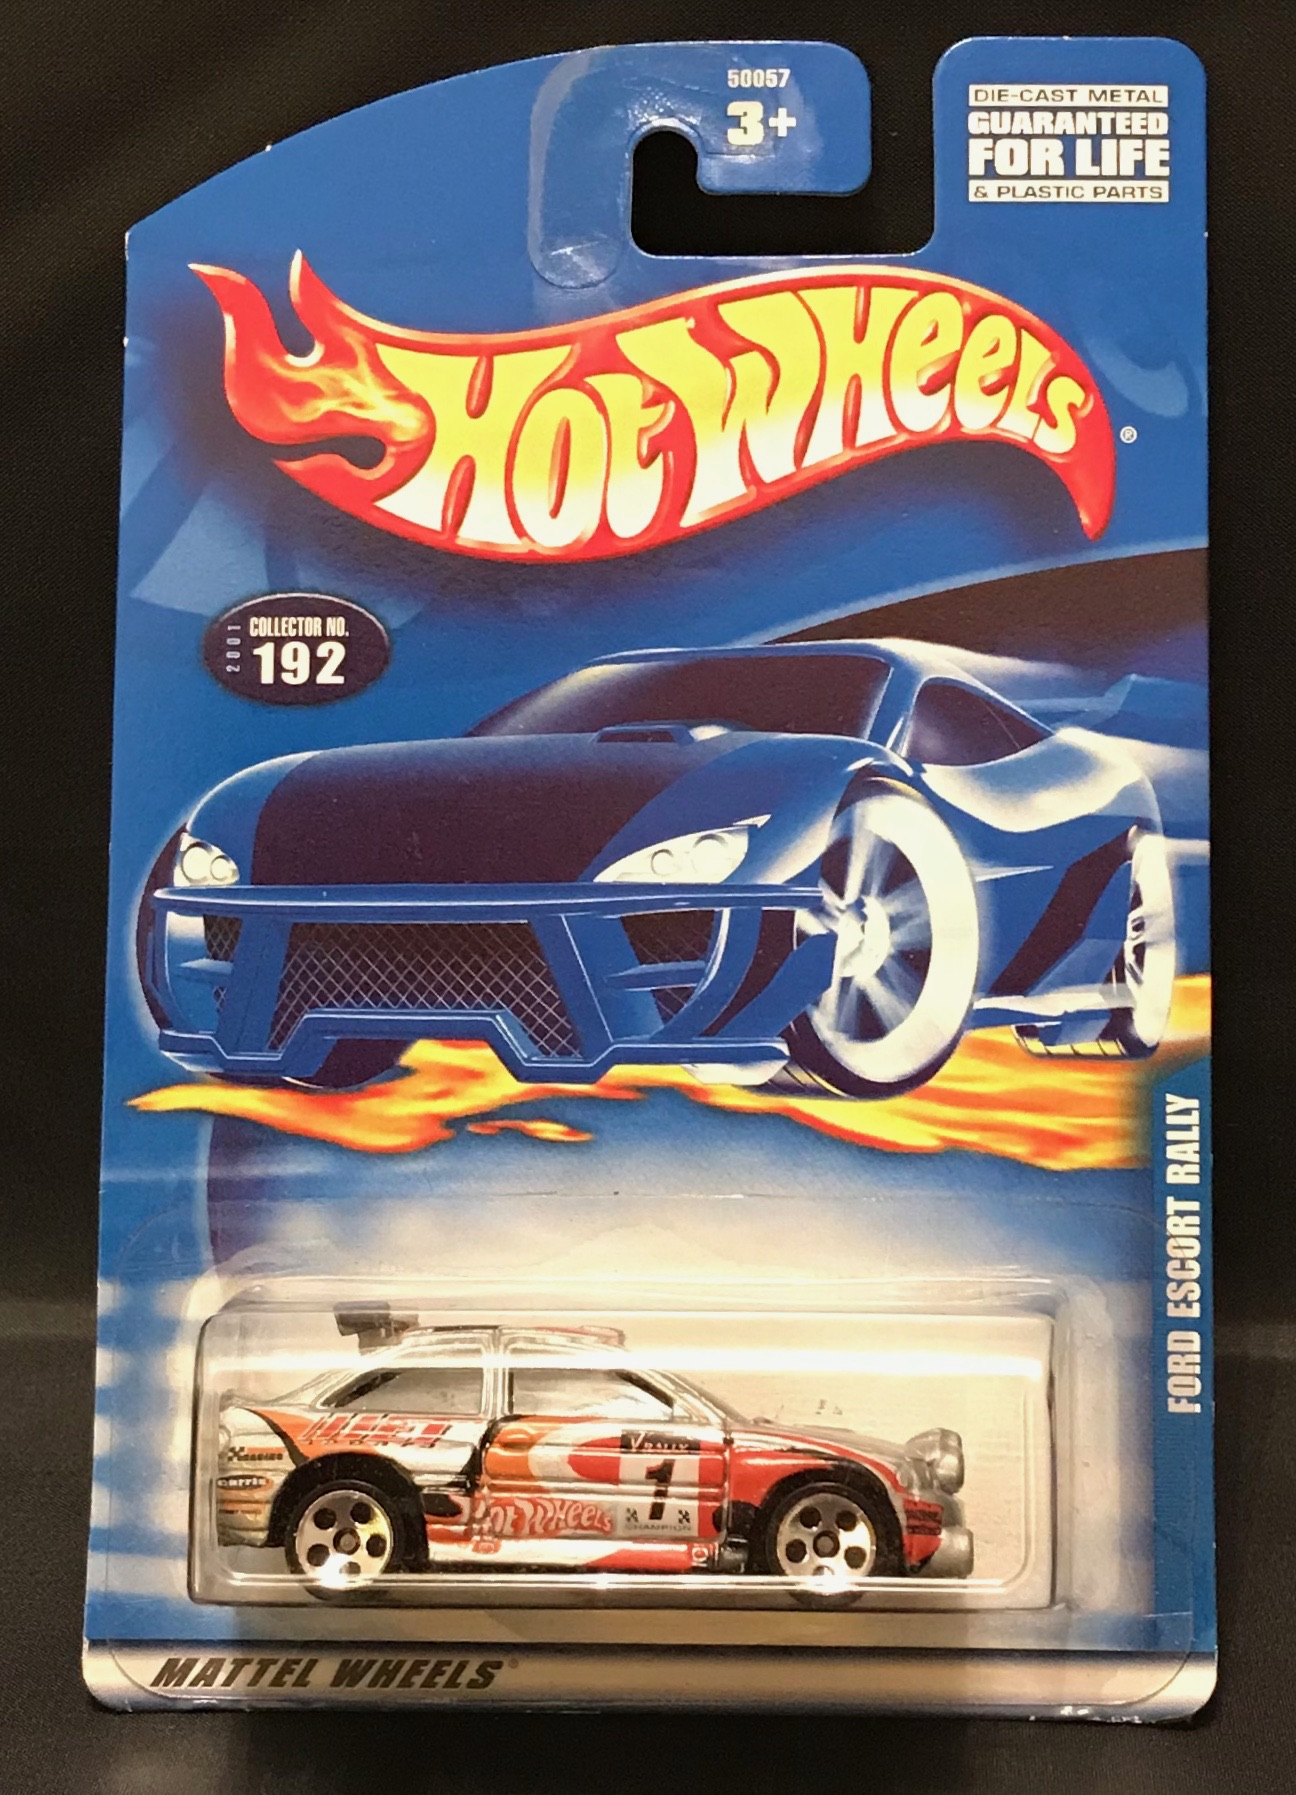 New Old Stock of Hot Wheels now added